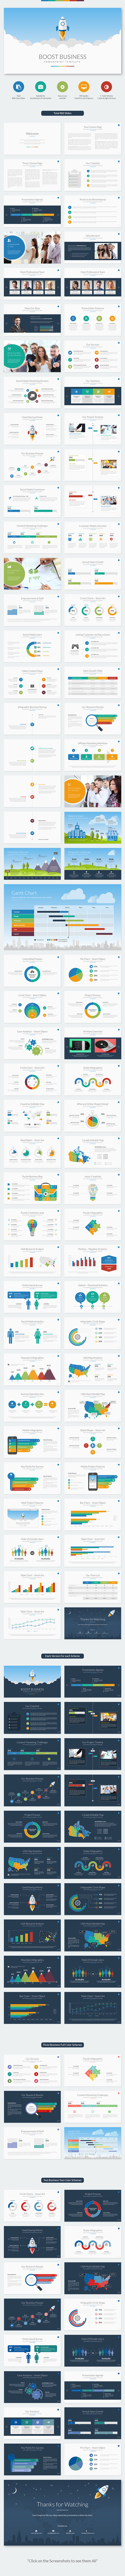 GraphicRiver Boost Business Powerpoint Template 10171379